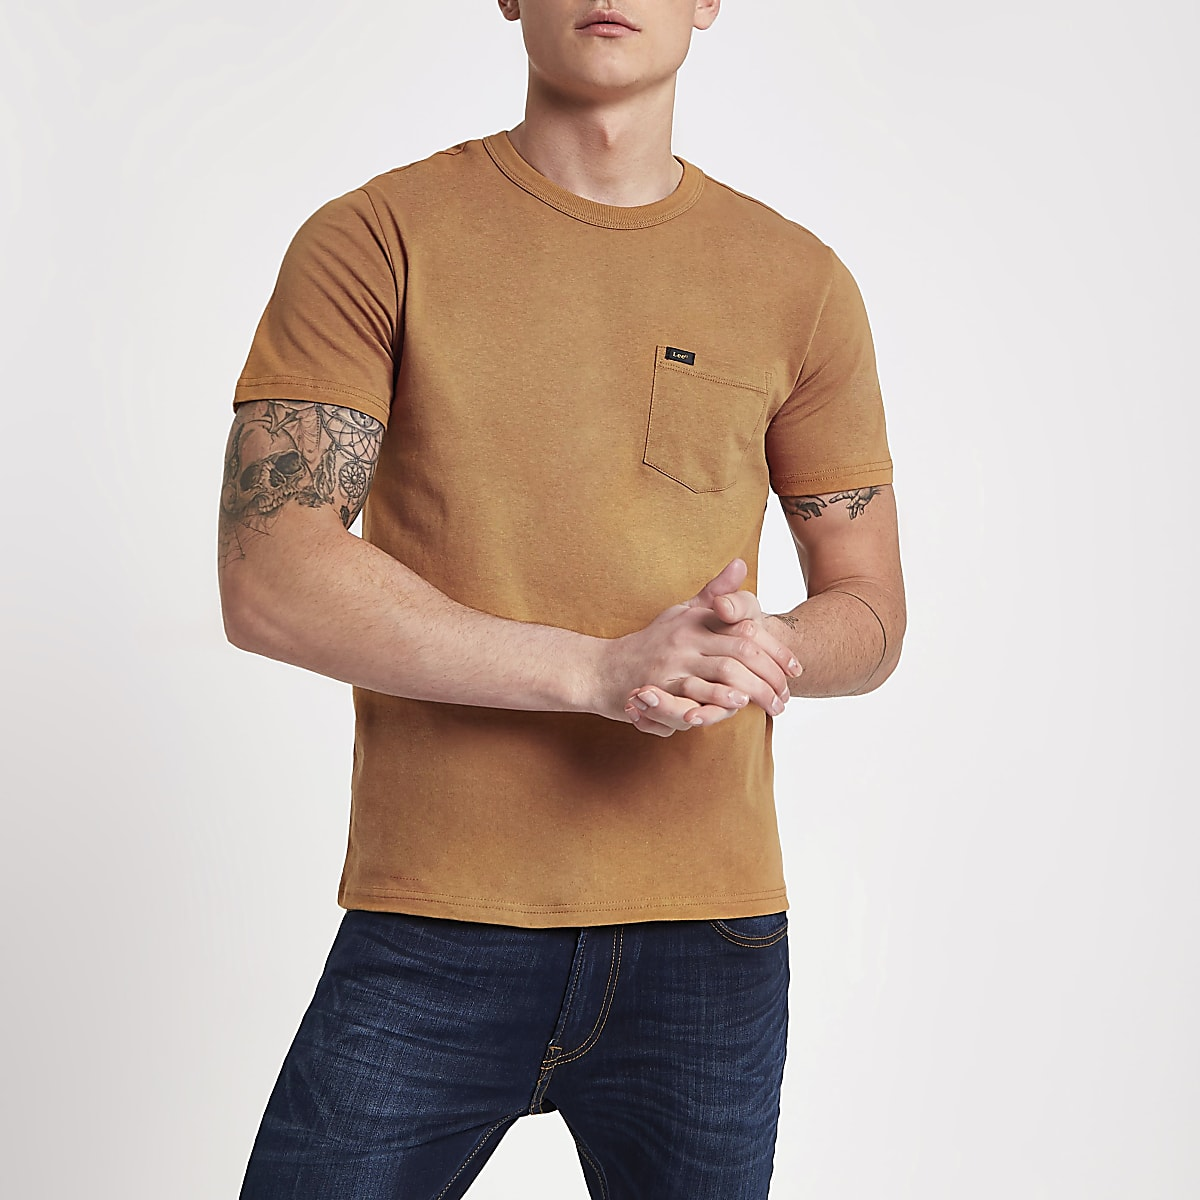 Lee tan crew neck pocket T-shirt